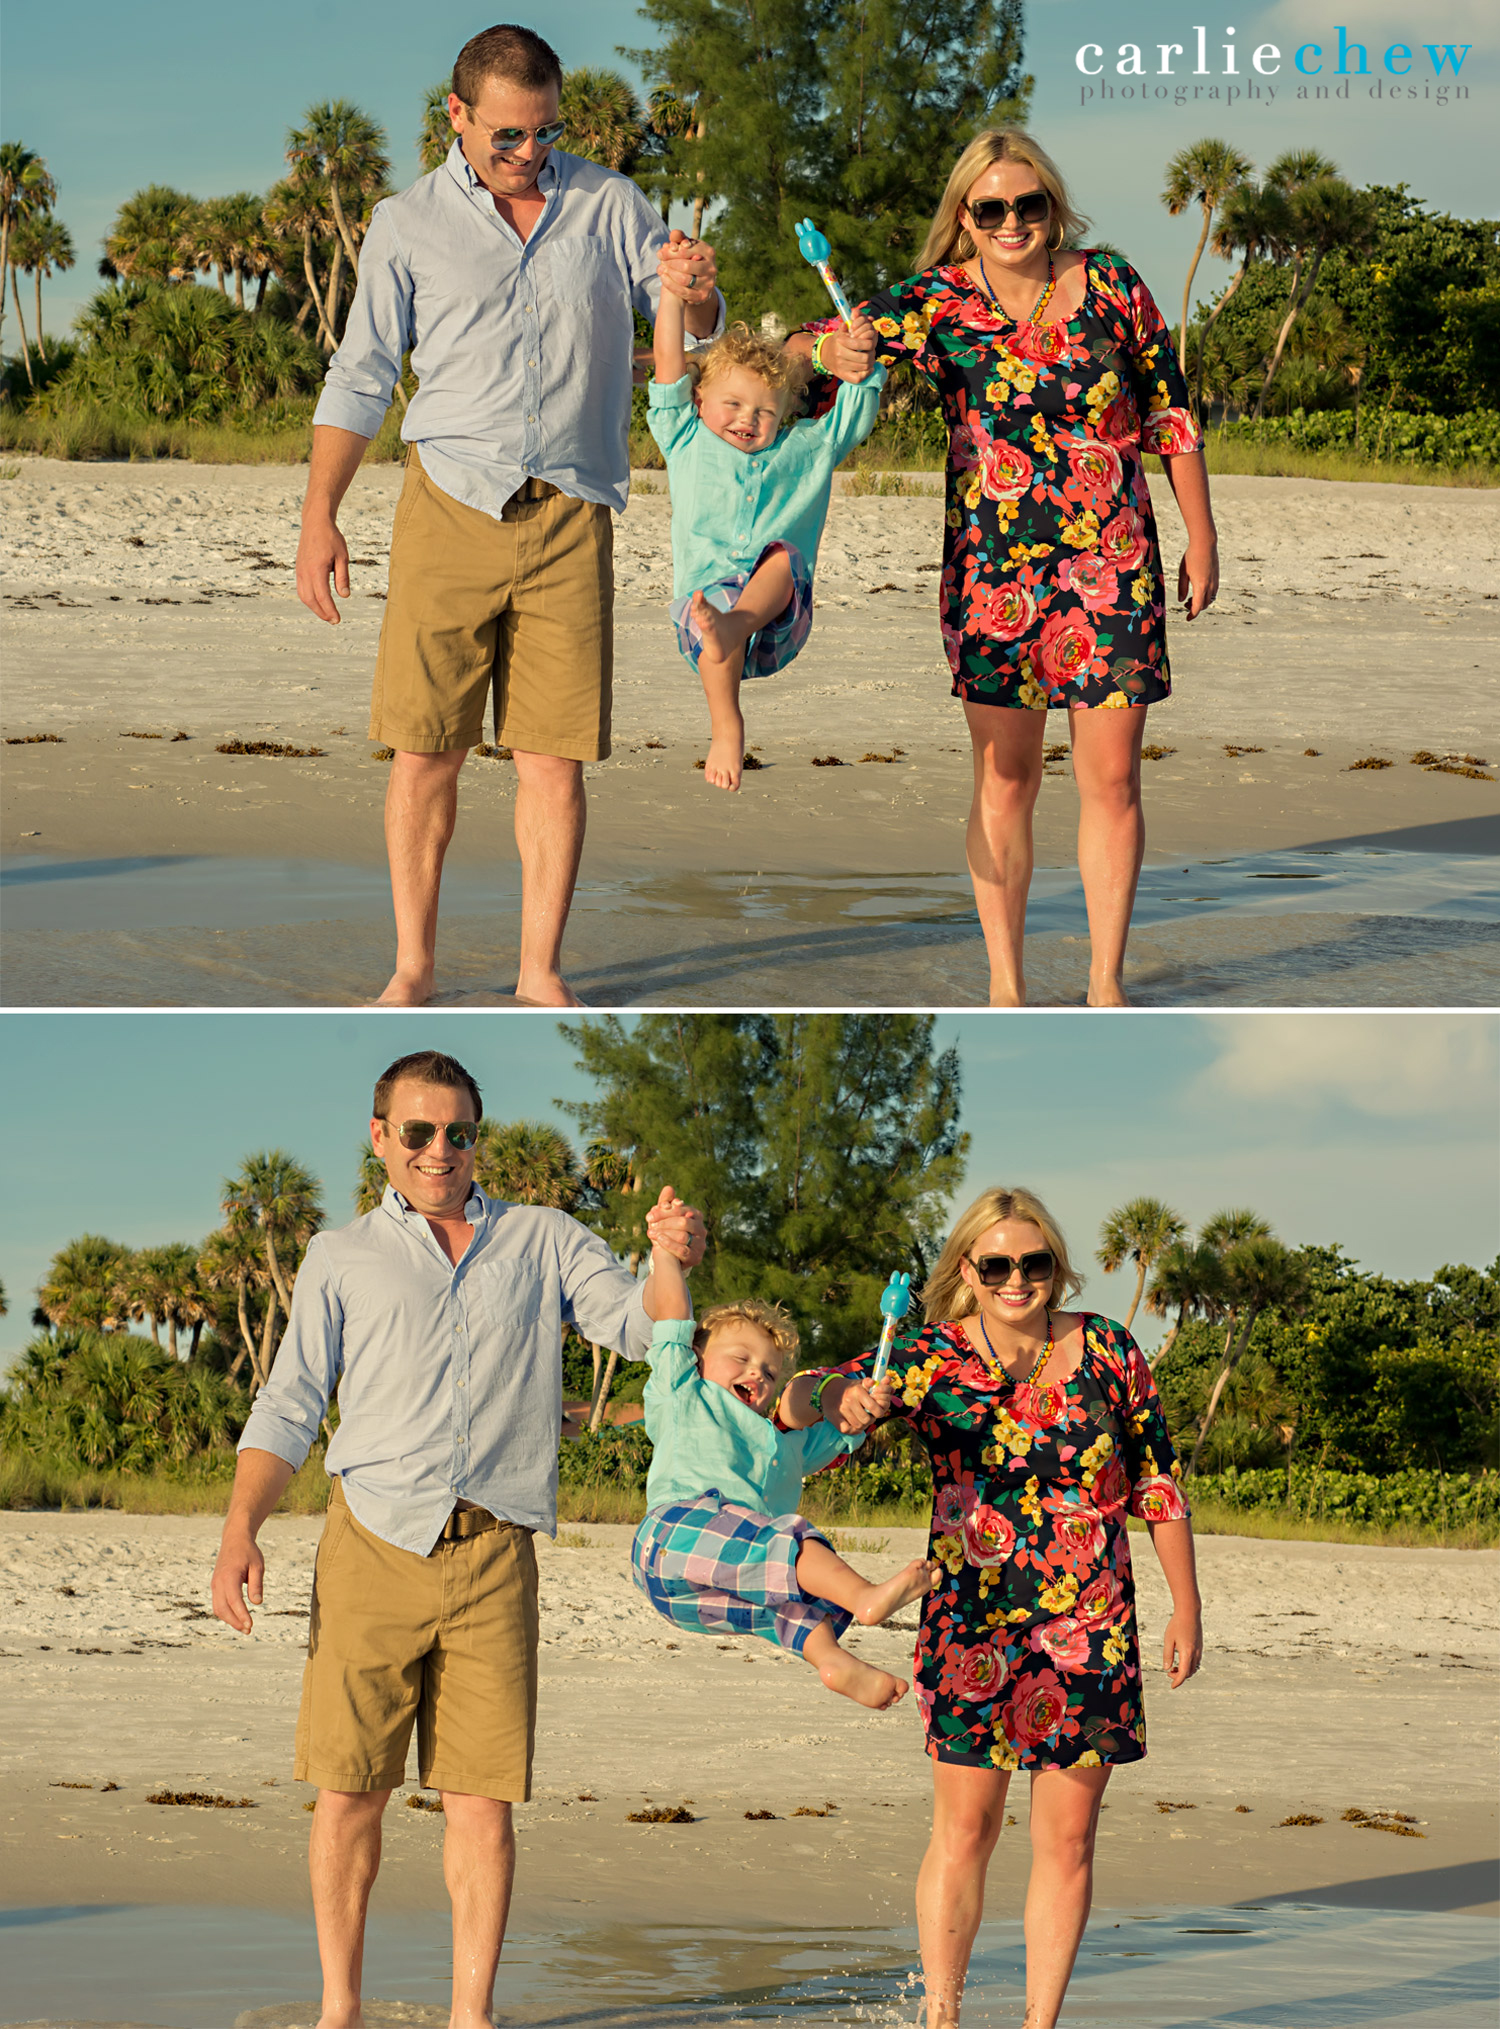 Couples swings toddler in fun family photos at Anna Maria Island with Carlie Chew Photography